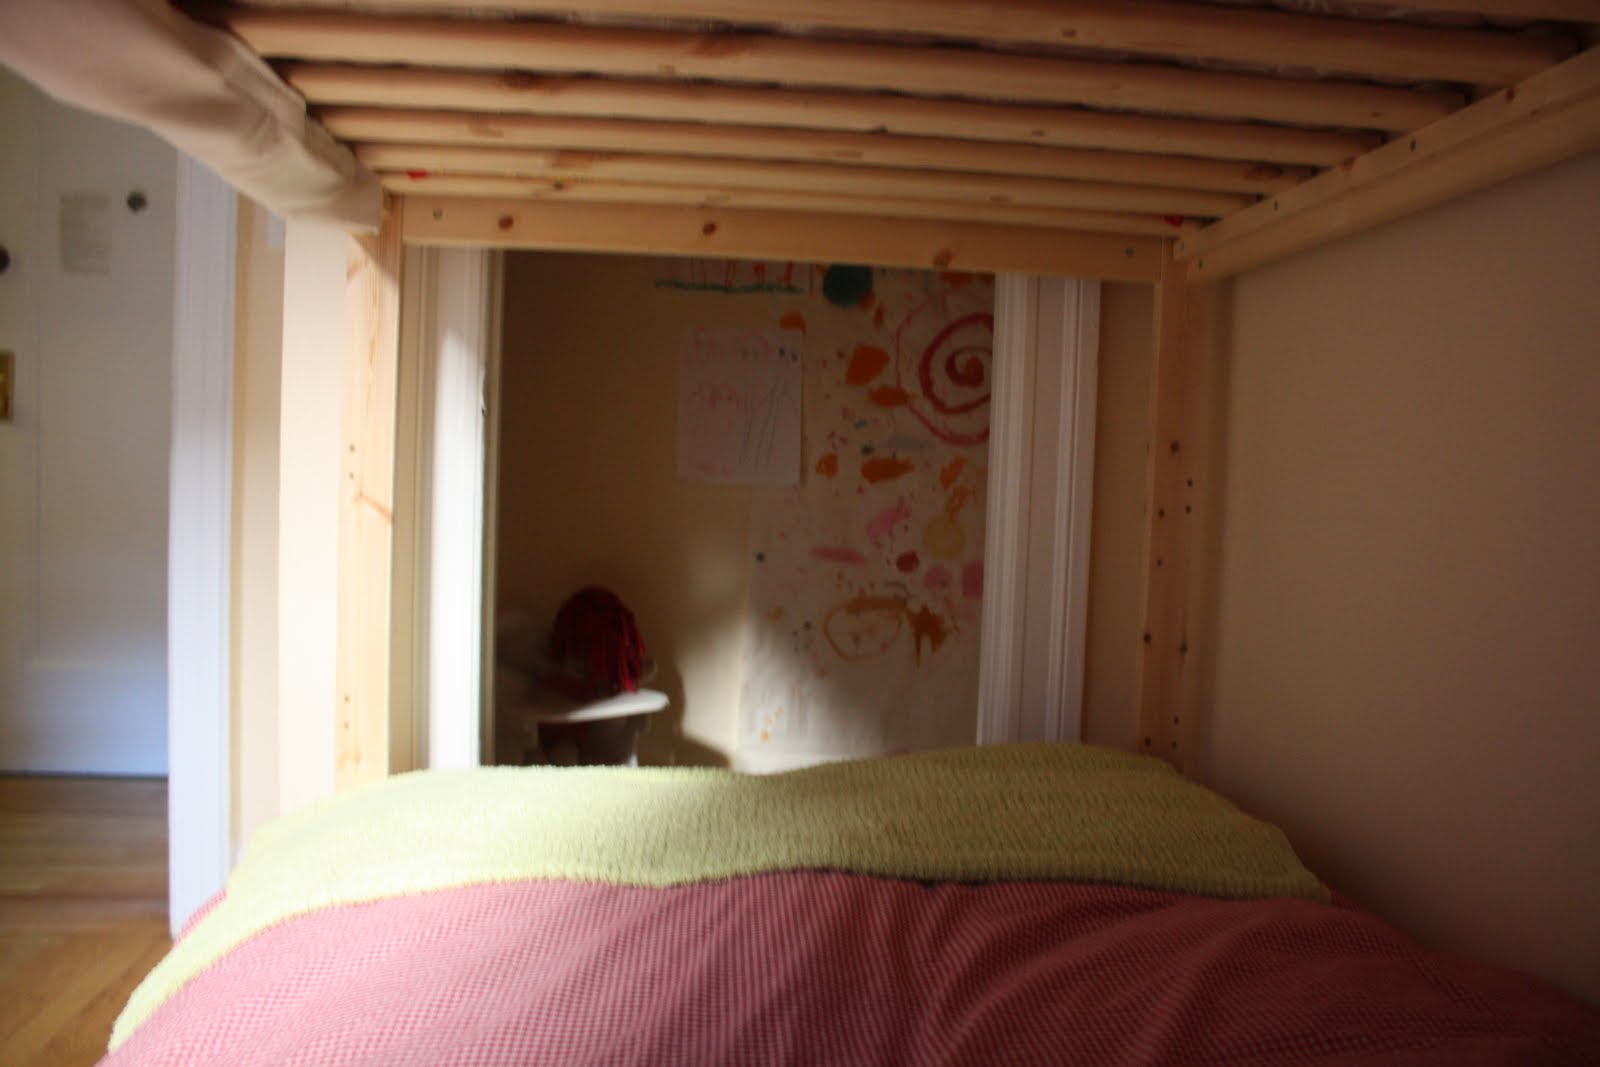 Dried Figs And Wooden Spools How To Make The Bottom Bunk